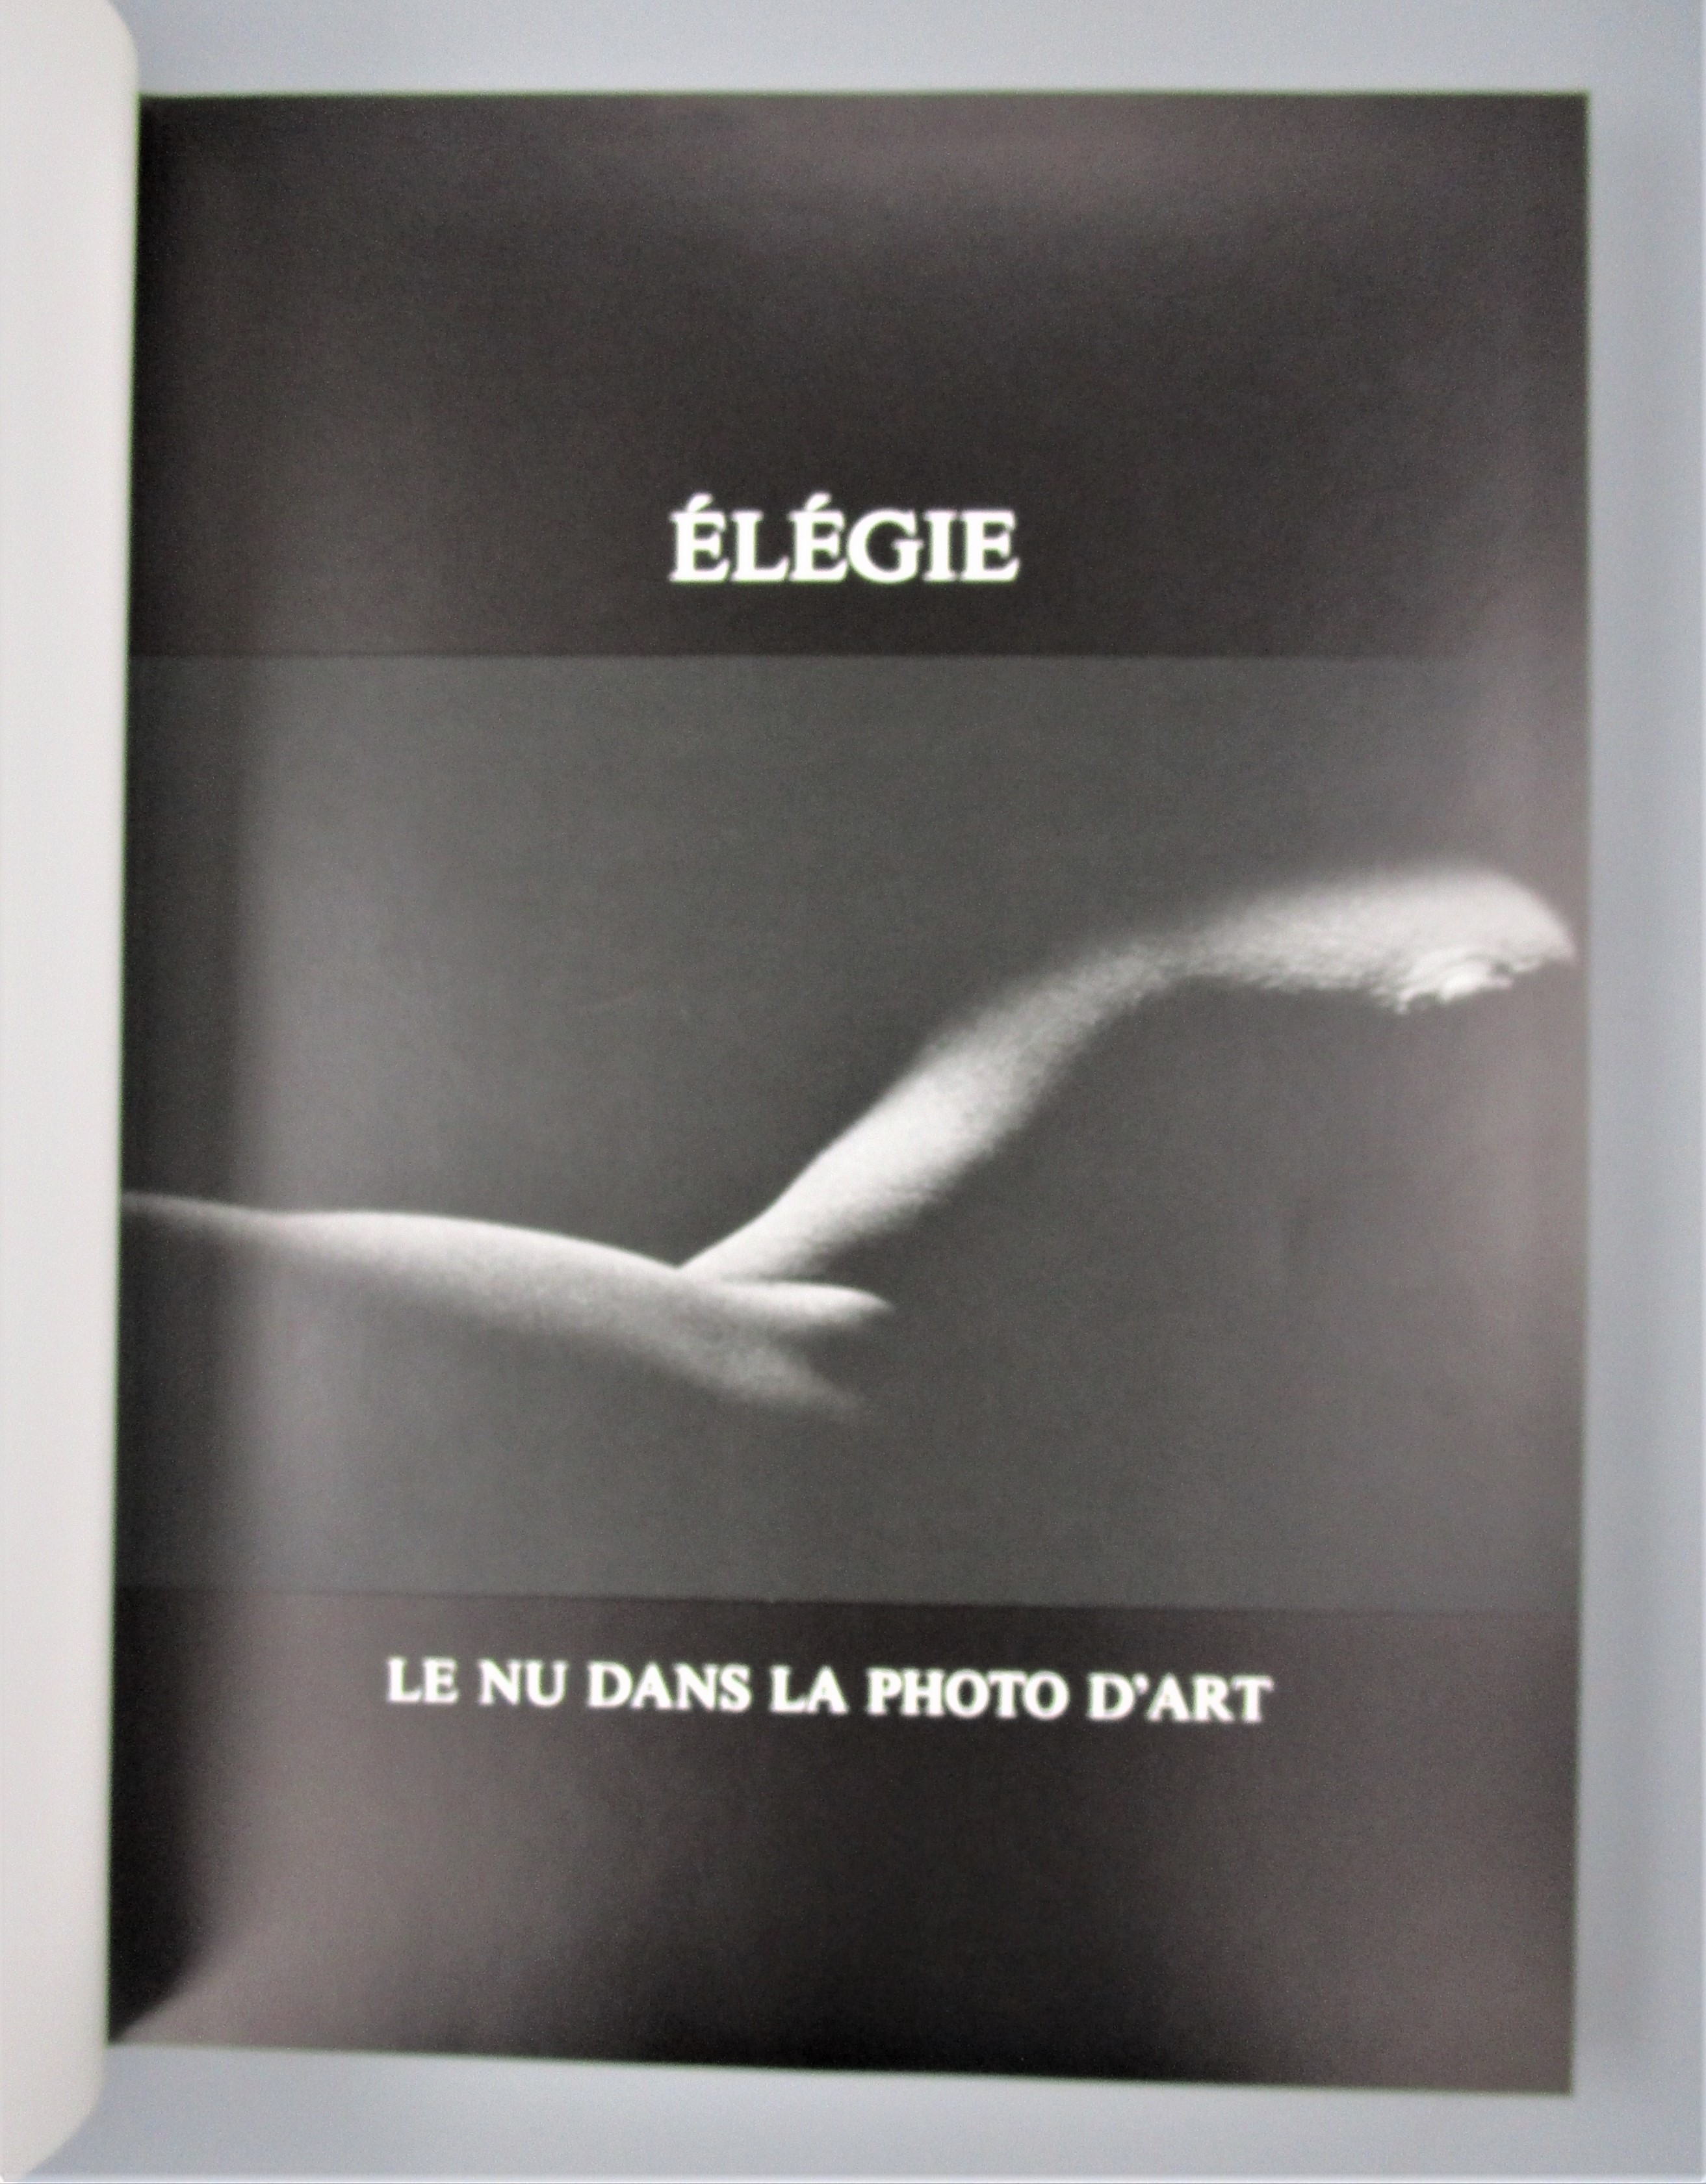 ELEGIE LE NU DANS LA PHOTO D'ART, by Alexandre Lavrentiev - 1992